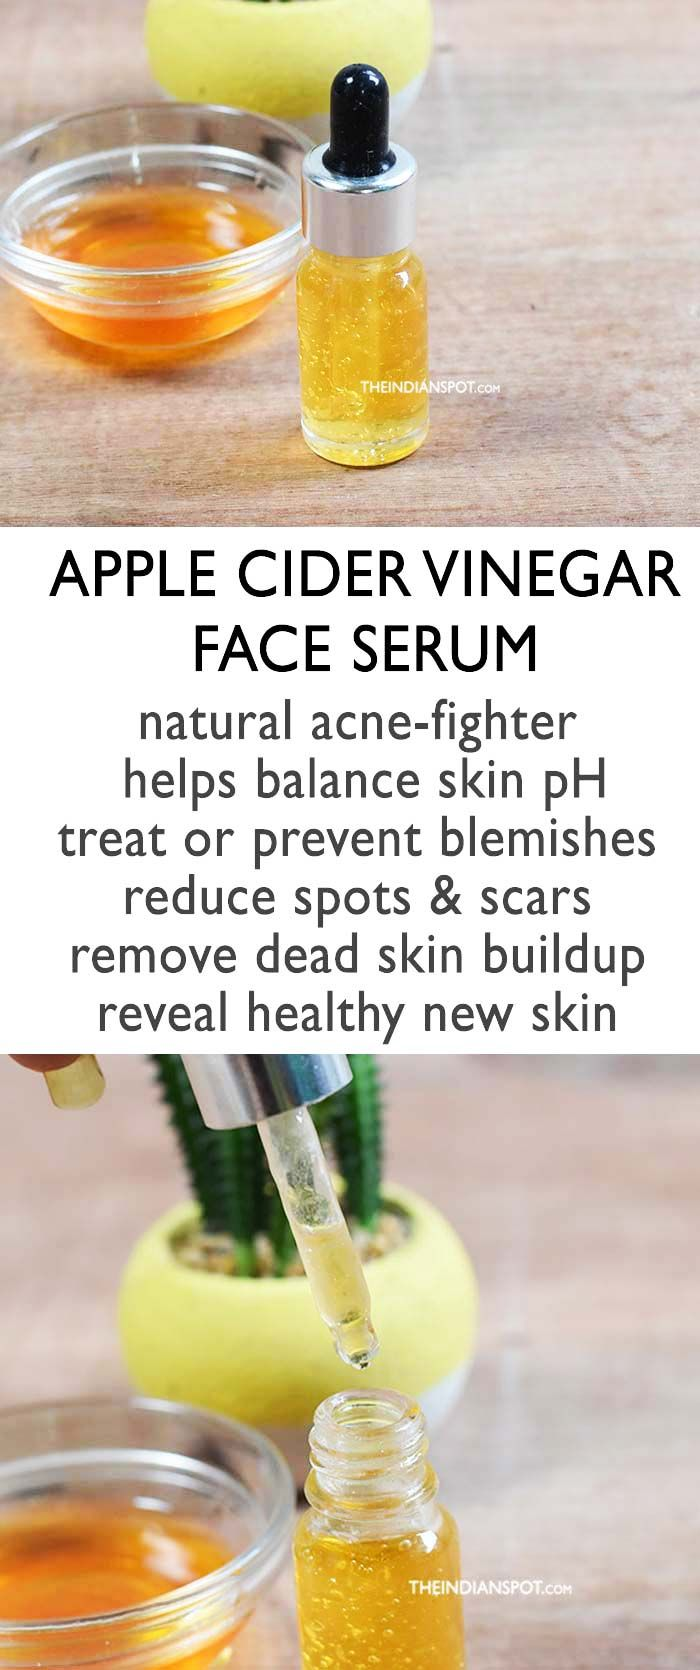 APPLE CIDER VINEGAR SERUM- Clear and balanced skin | Apple